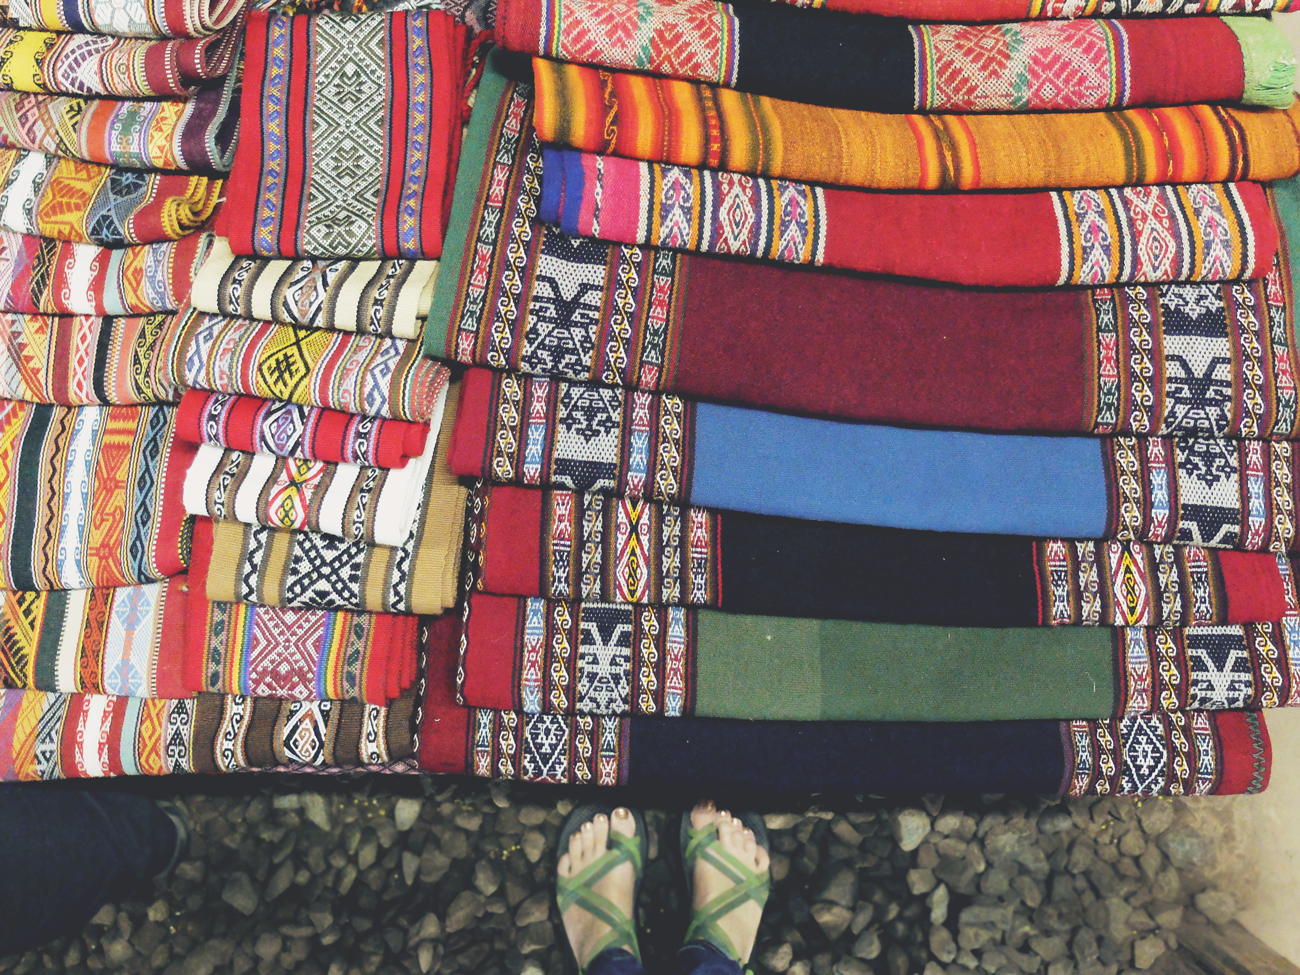 textiles-on-table-above-feet